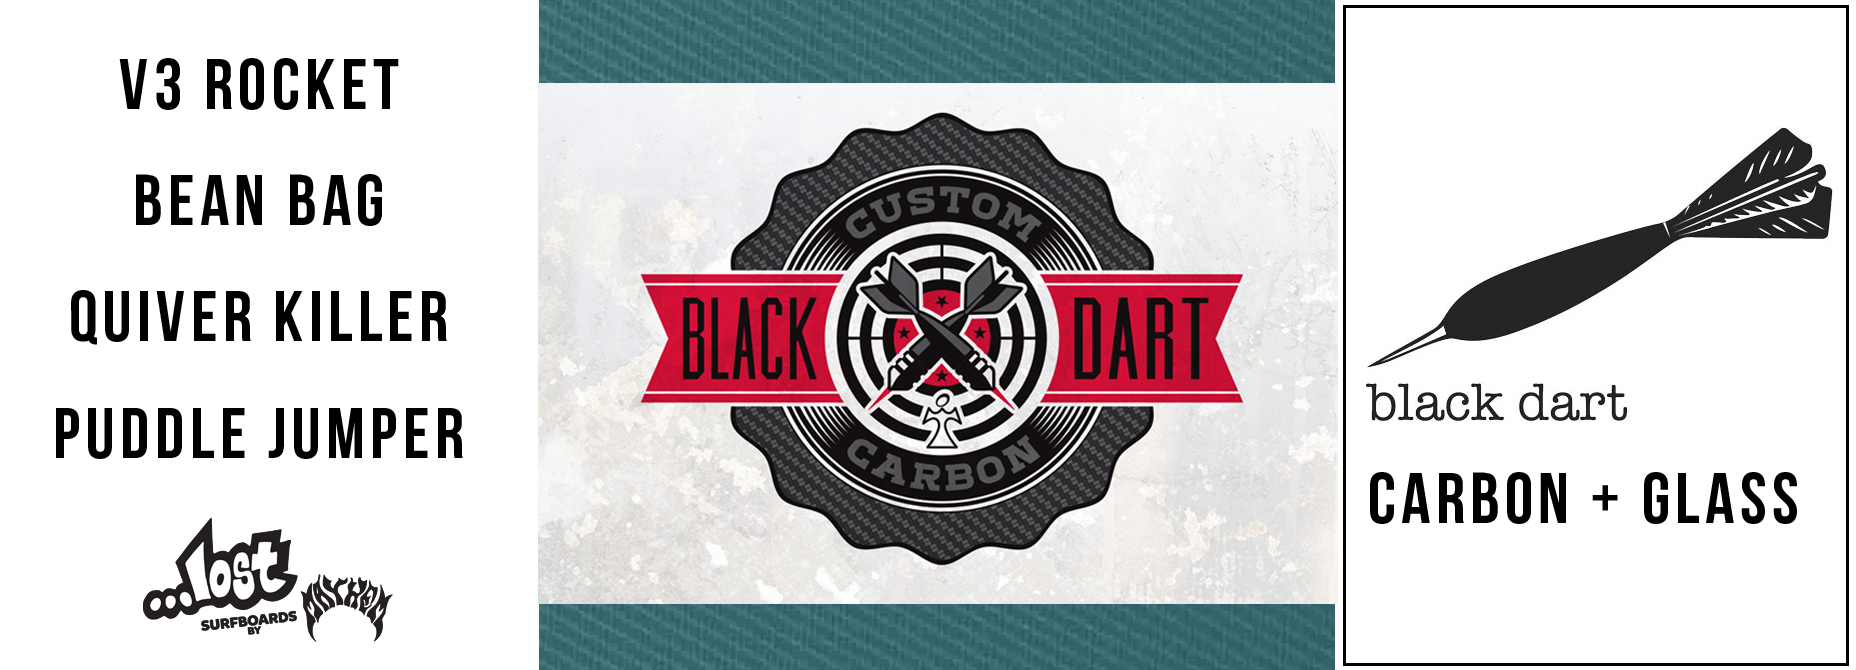 banner_blog_tablassurfshop_blackdart